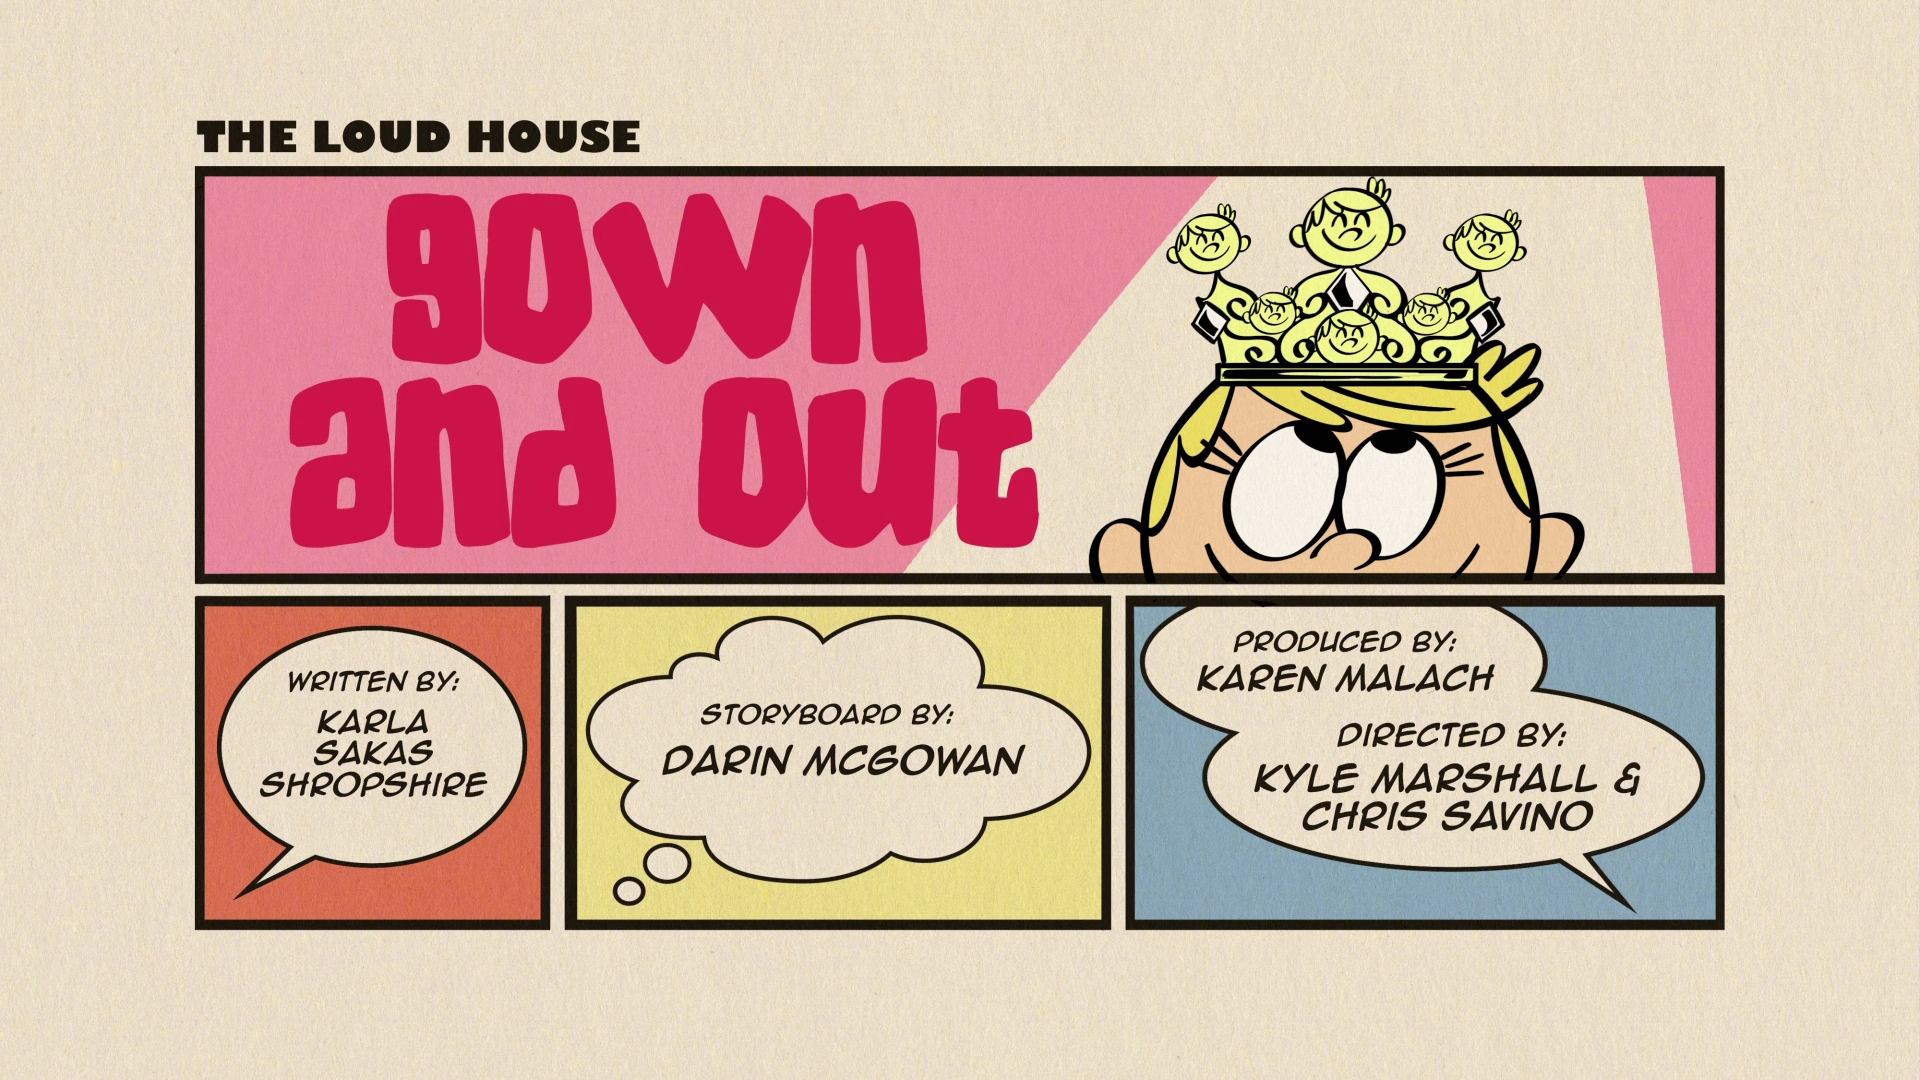 Gown And Out The Loud House Encyclopedia Fandom Powered By Wikia